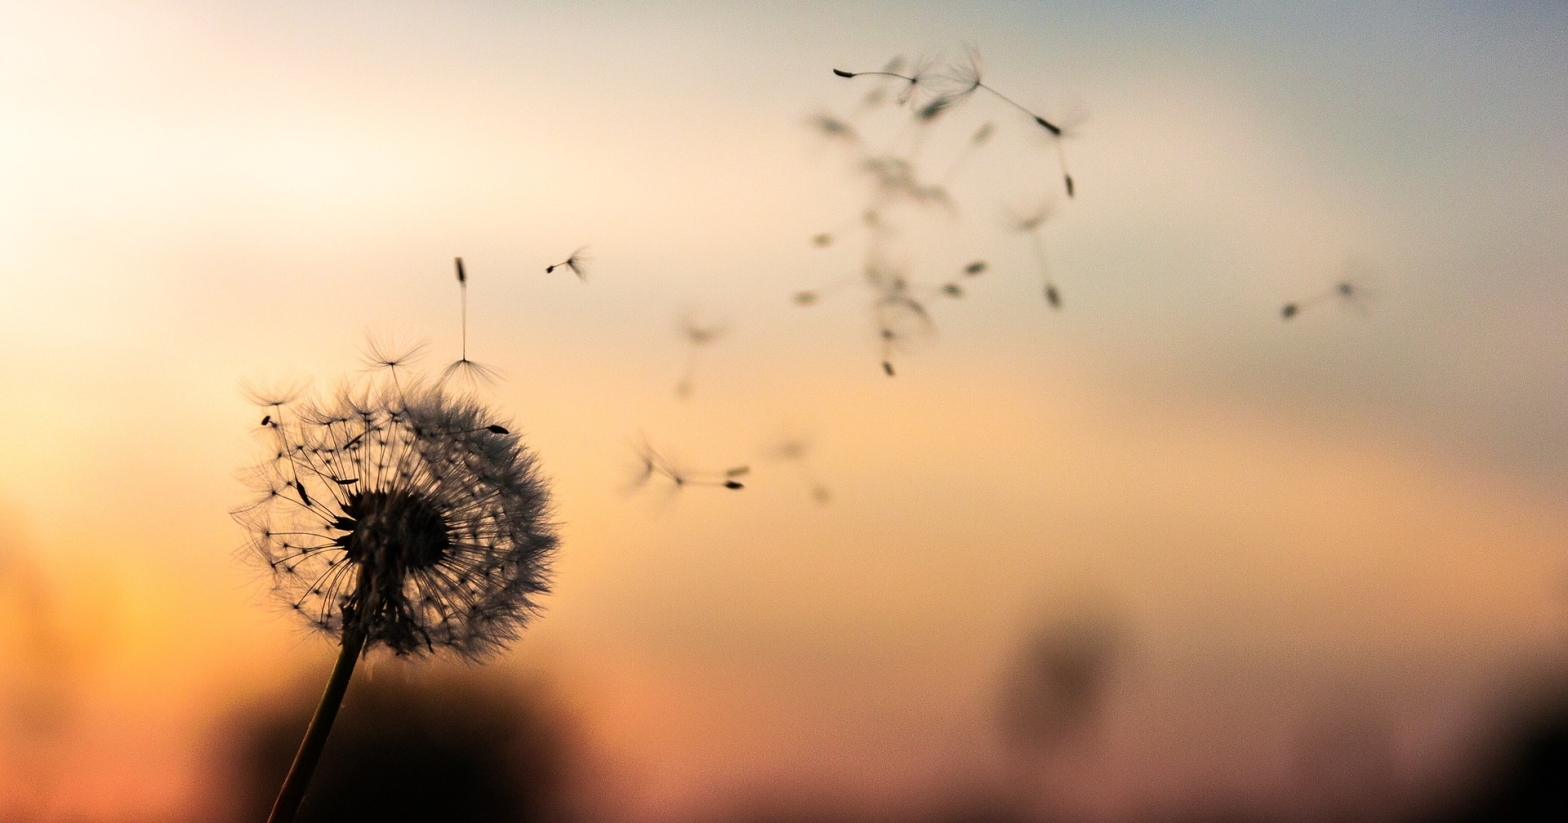 Poetry Dandelion against a sunset sky with seeds floating away with the wind